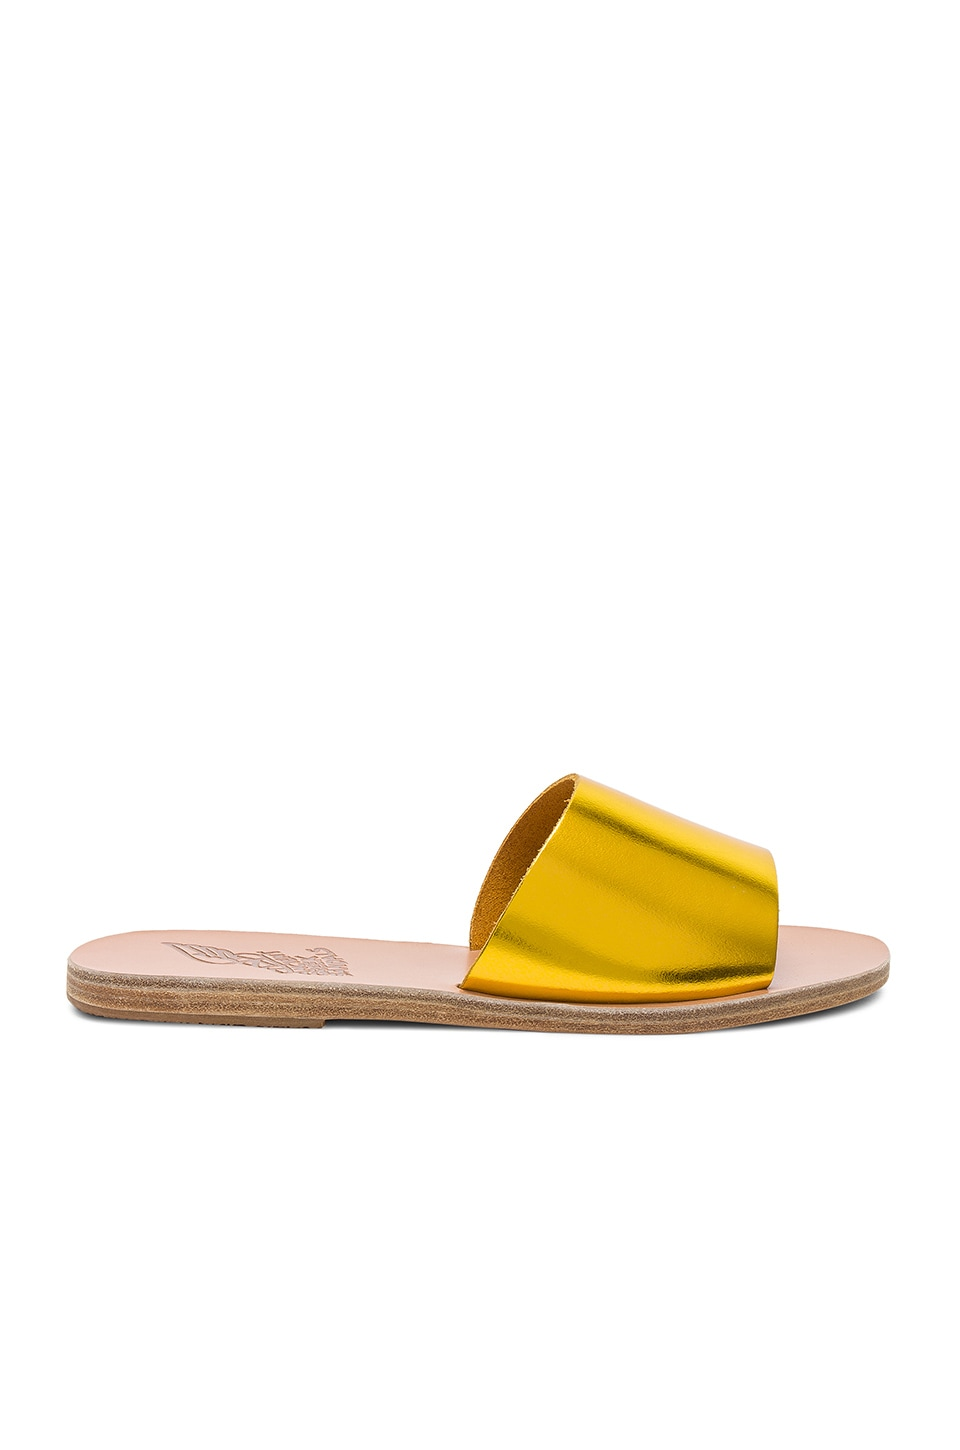 Taygete Slide by Ancient Greek Sandals